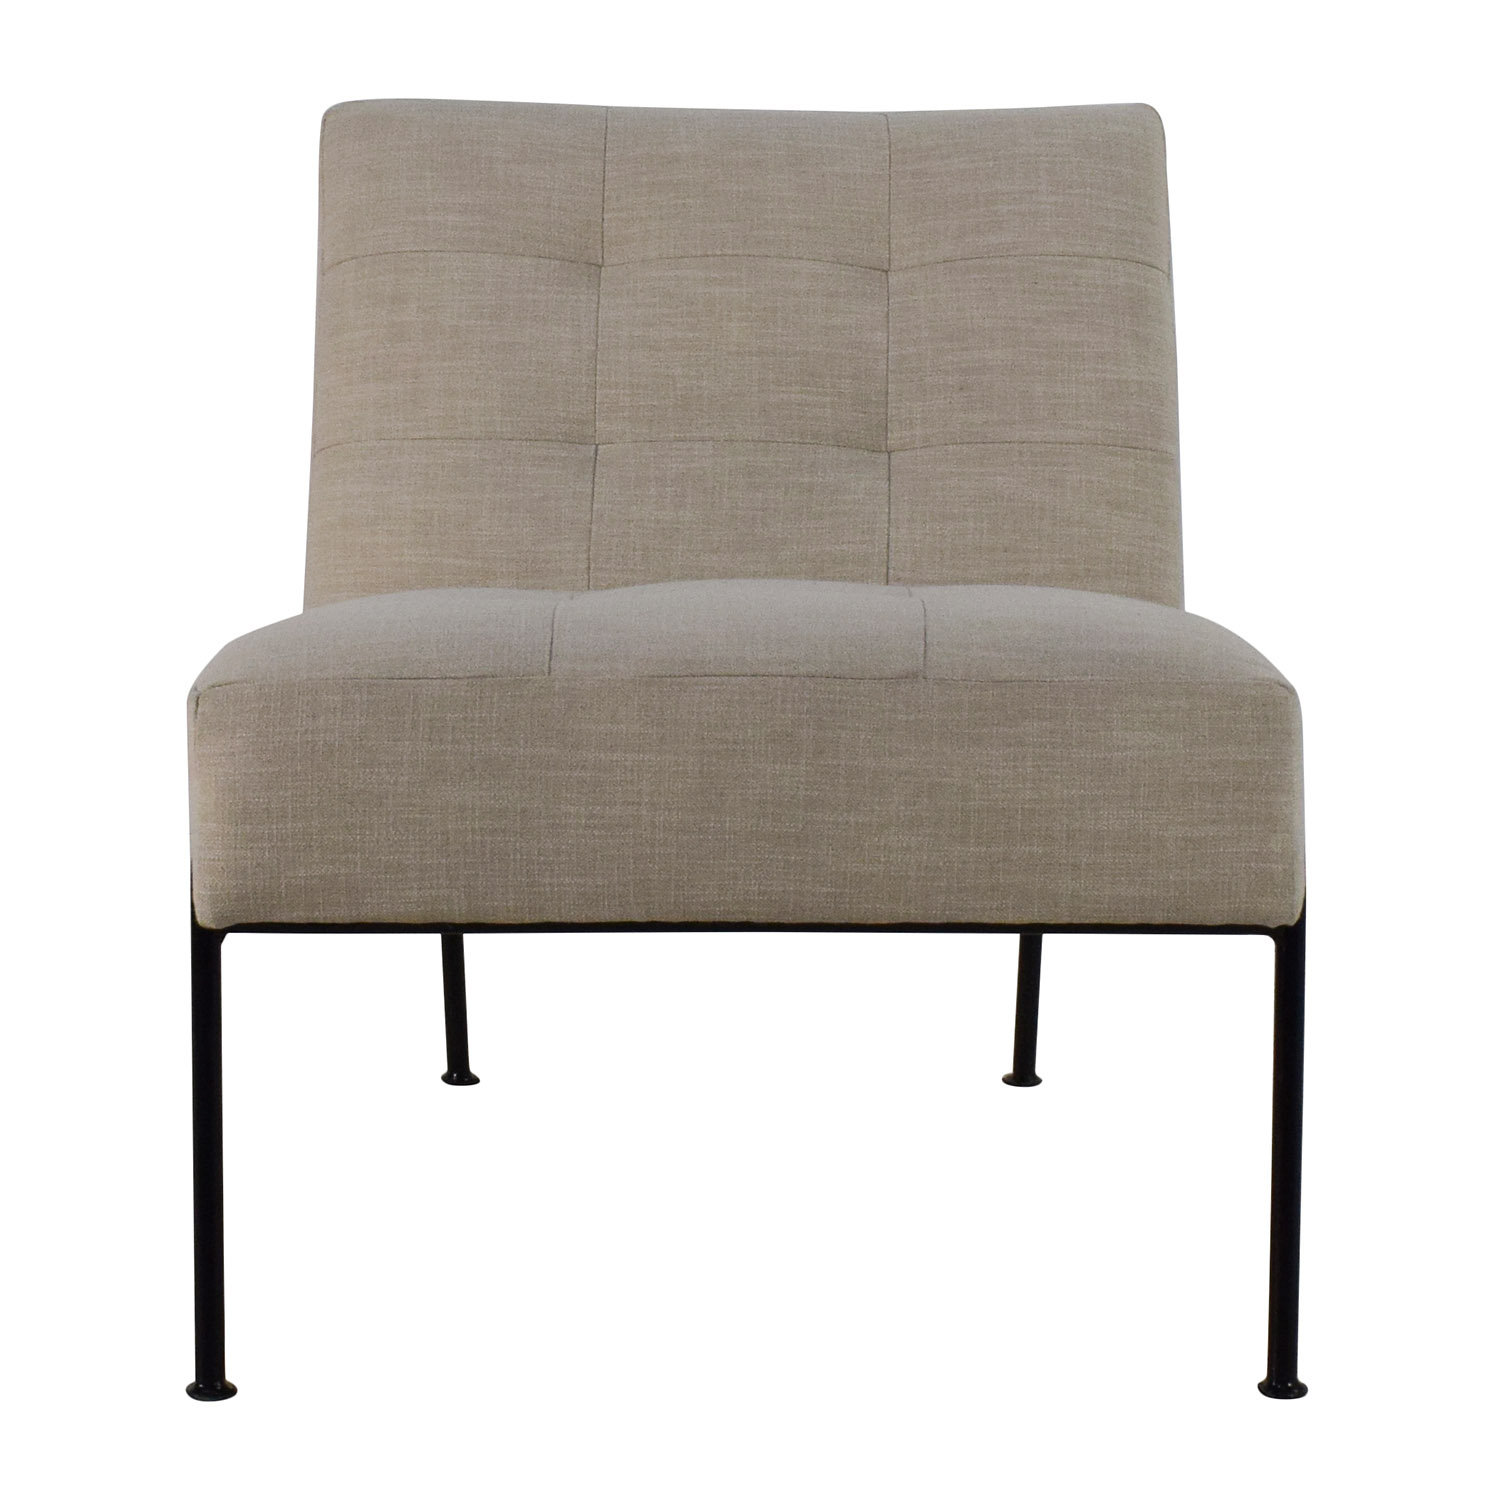 buy West Elm West Elm Oswald Tufted Slipper Chair online